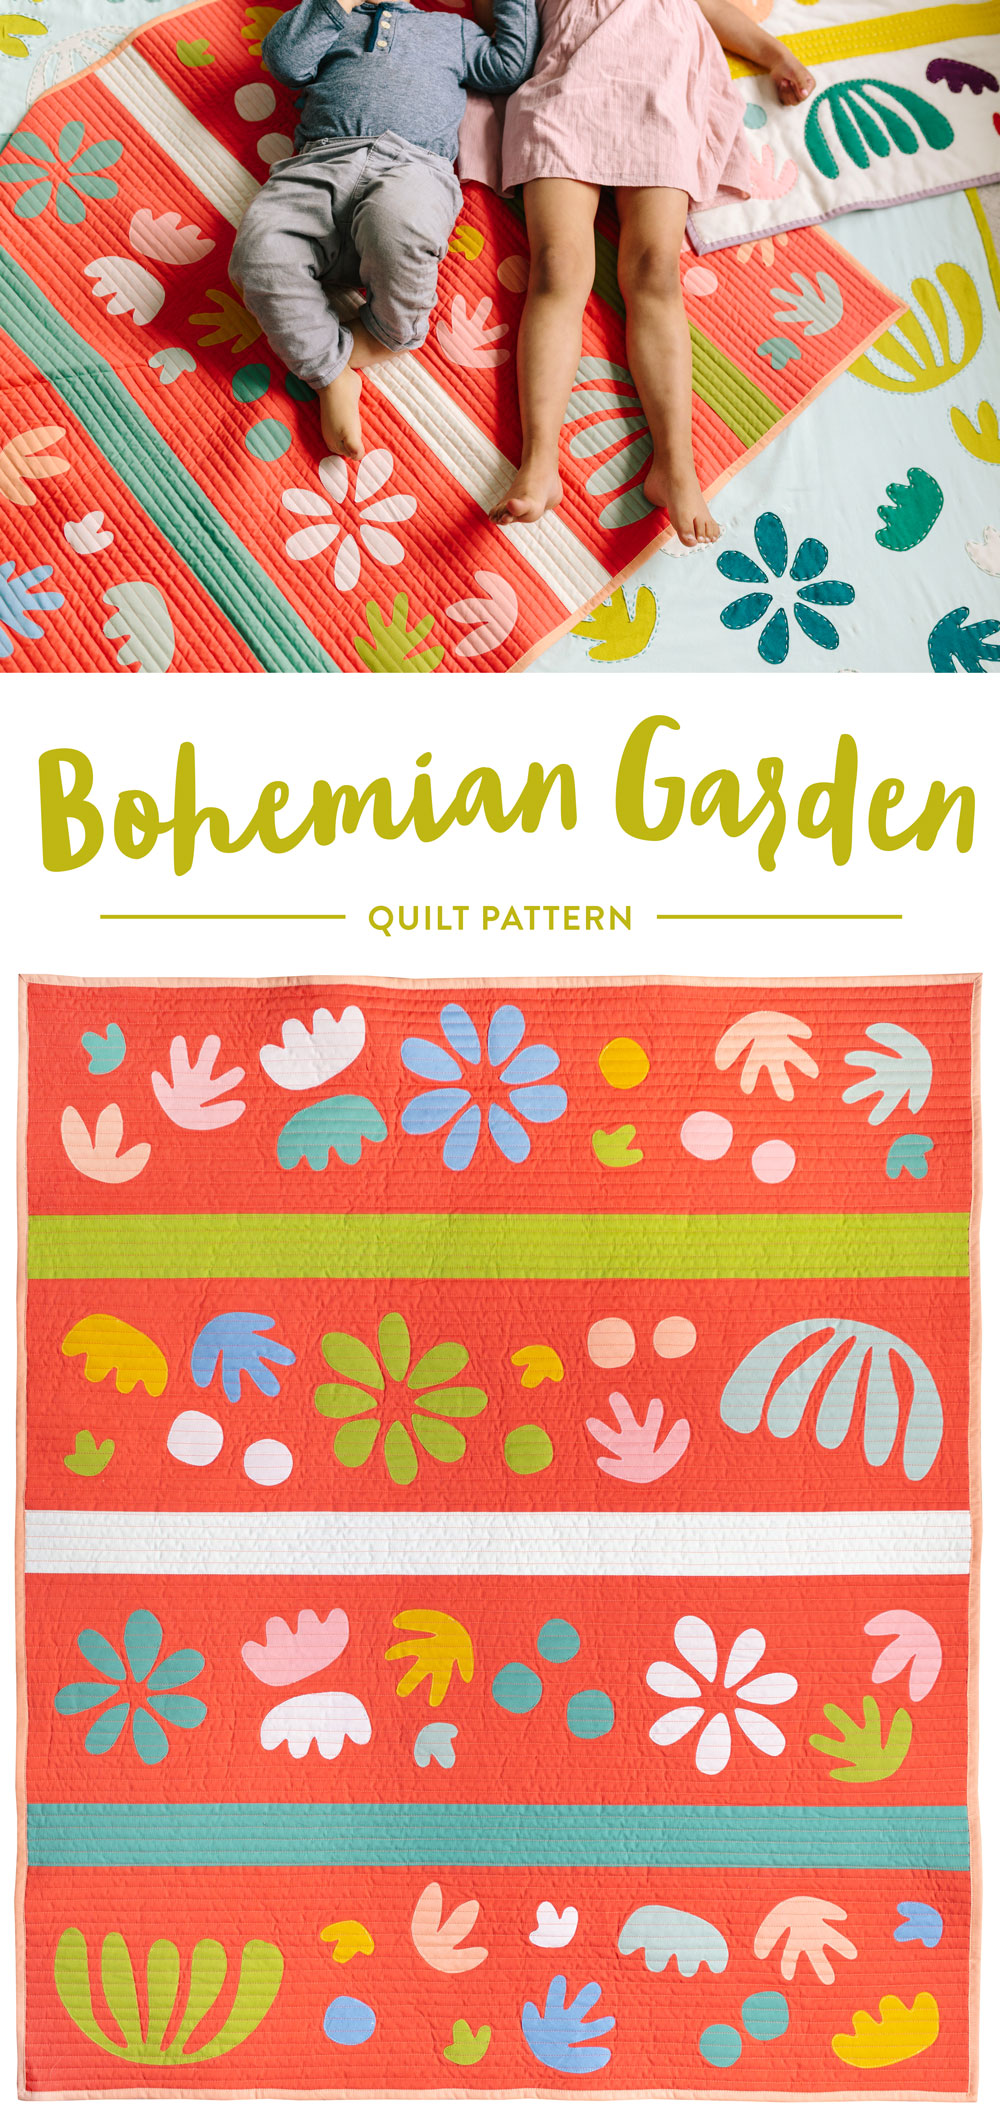 Get the Bohemian Garden quilt pattern – includes instructions for raw-edge applique